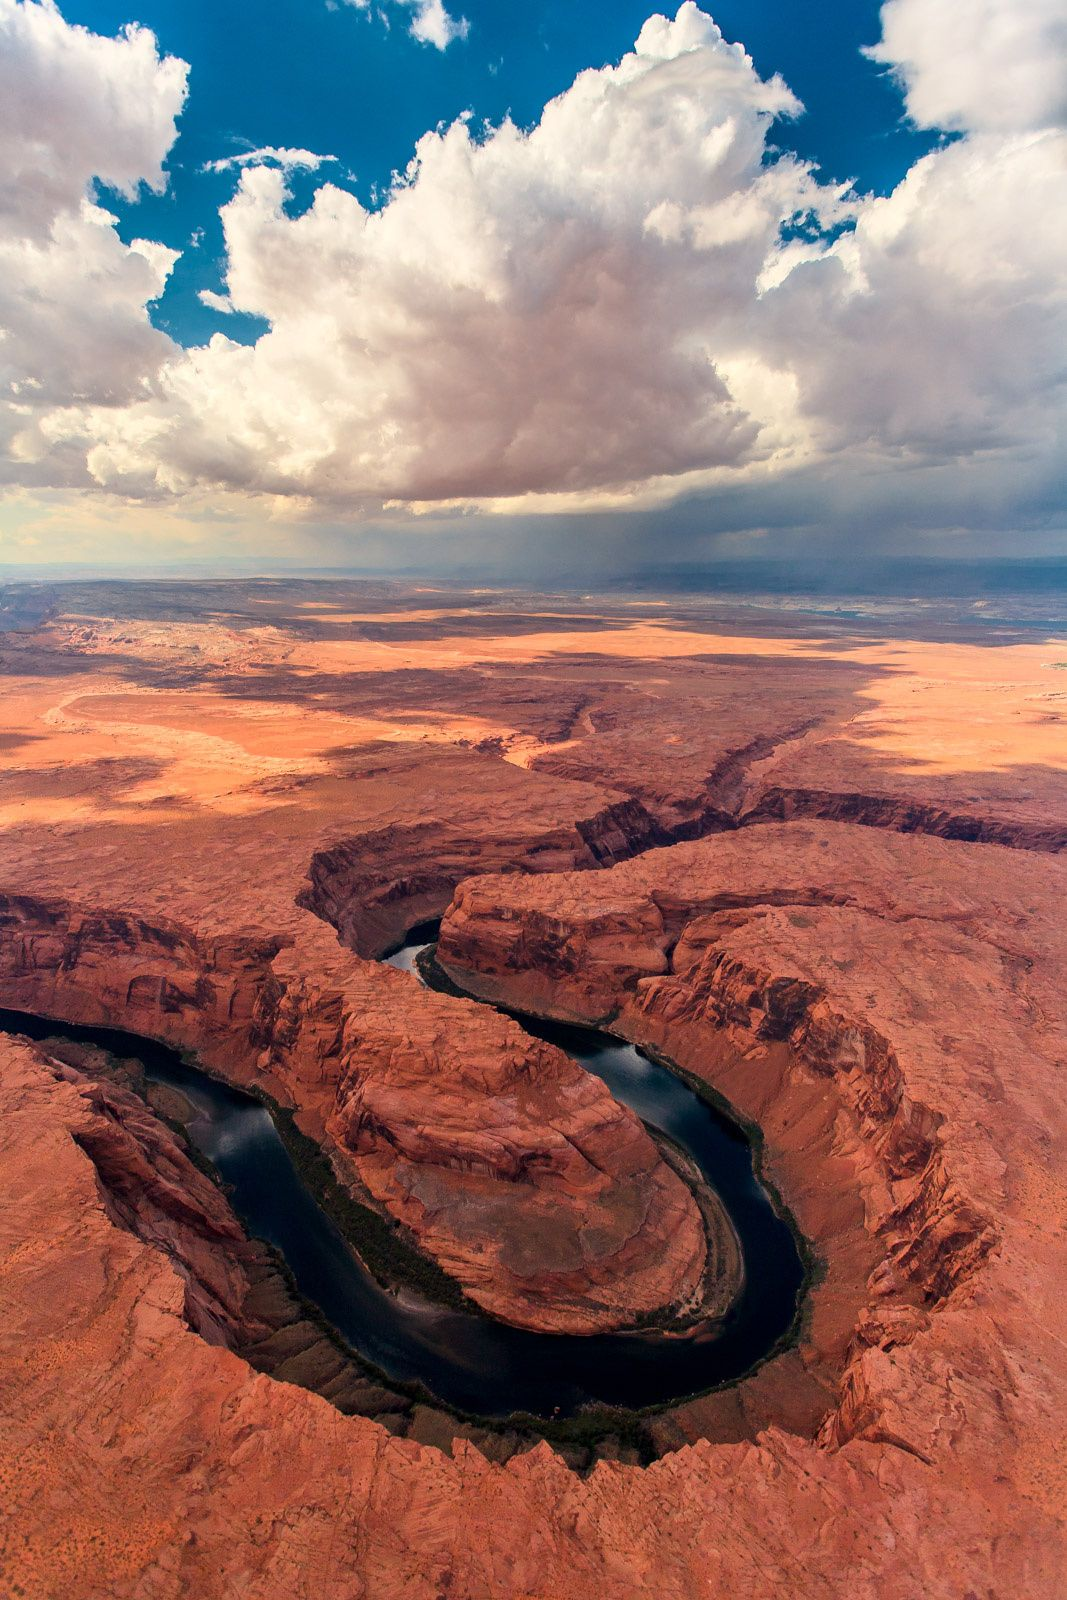 Colorado River Porn - Horseshoe Bend, one of the most photographed areas on the Colorado River;  just north